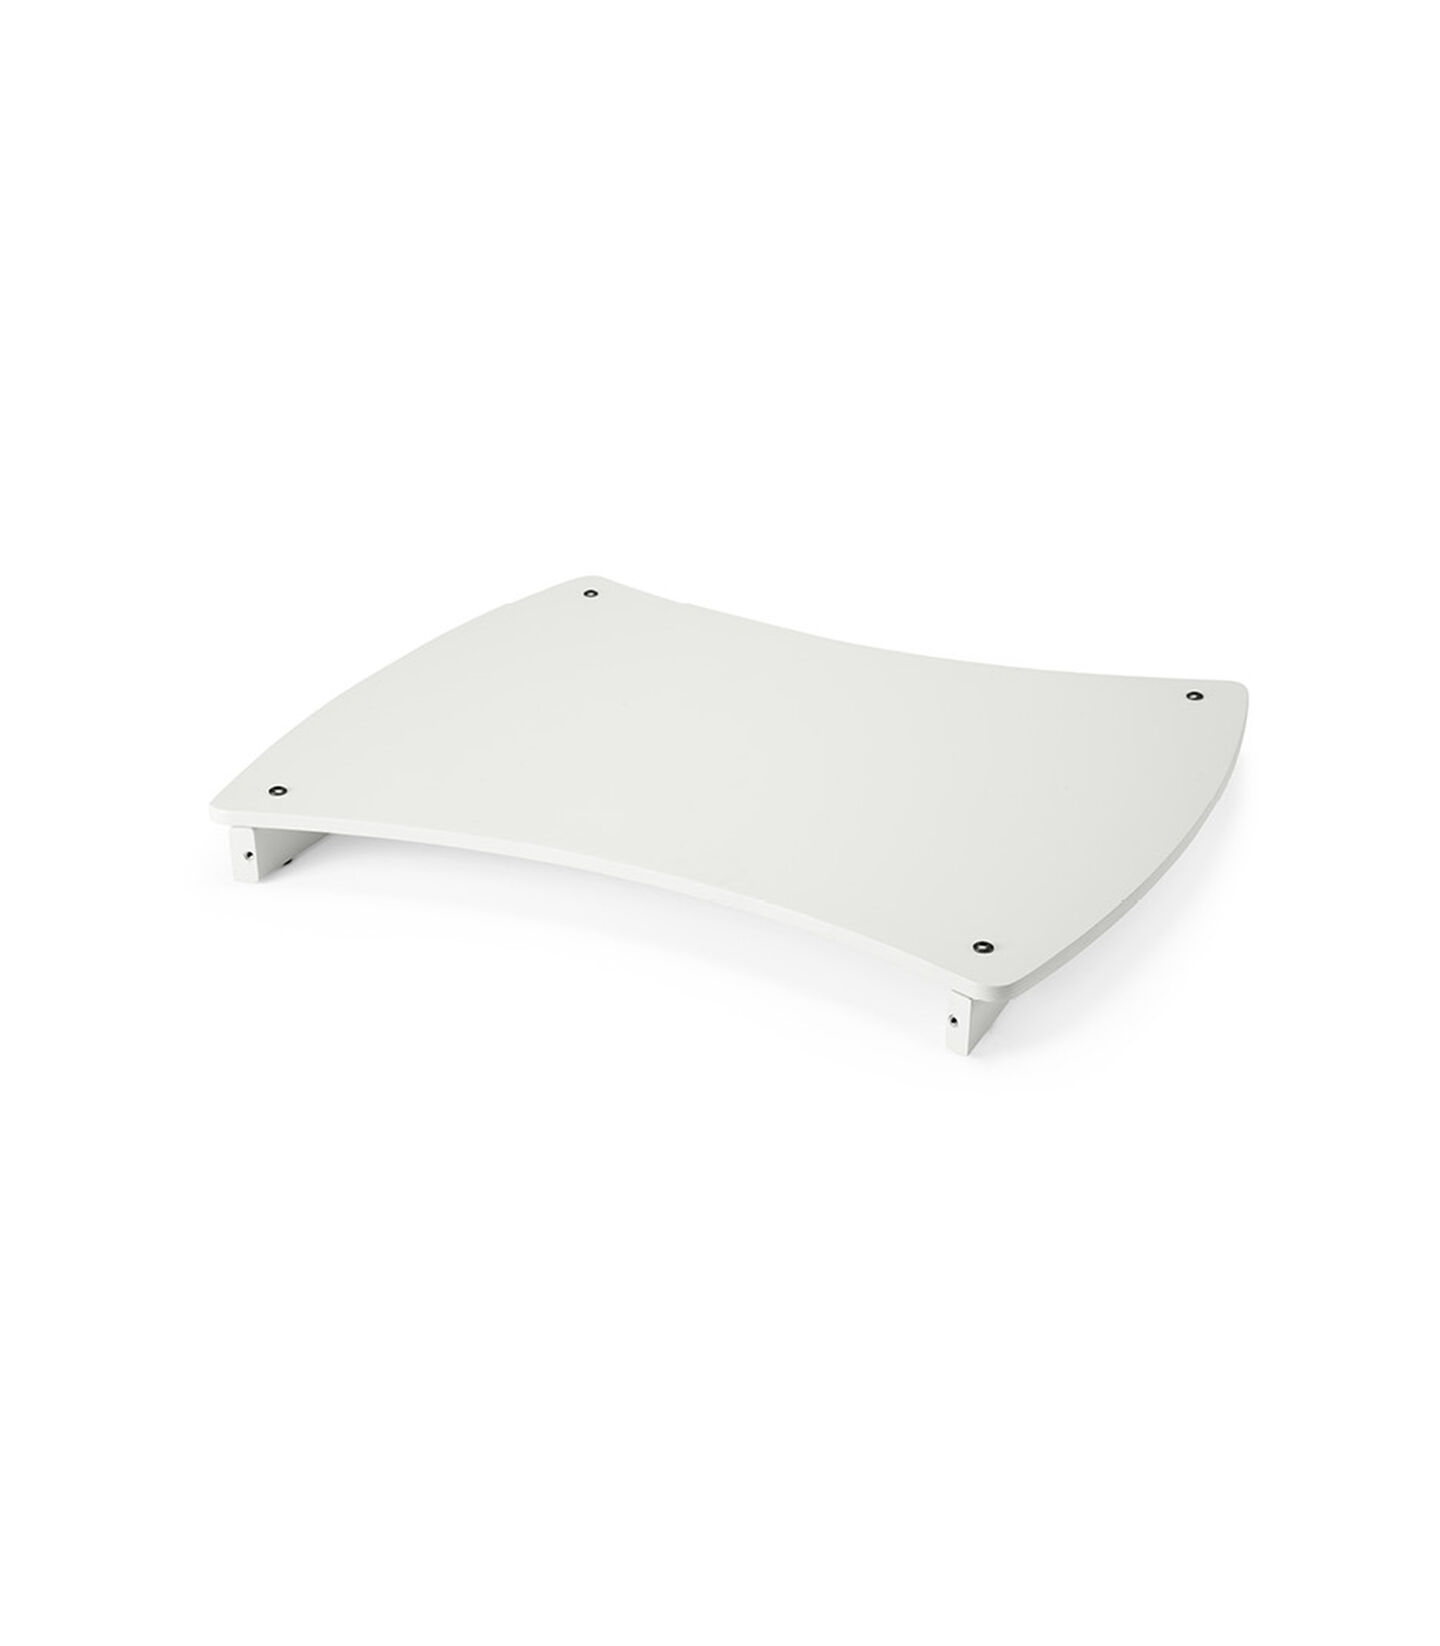 Stokke® Care™ Överhylla komplett White, White, mainview view 2